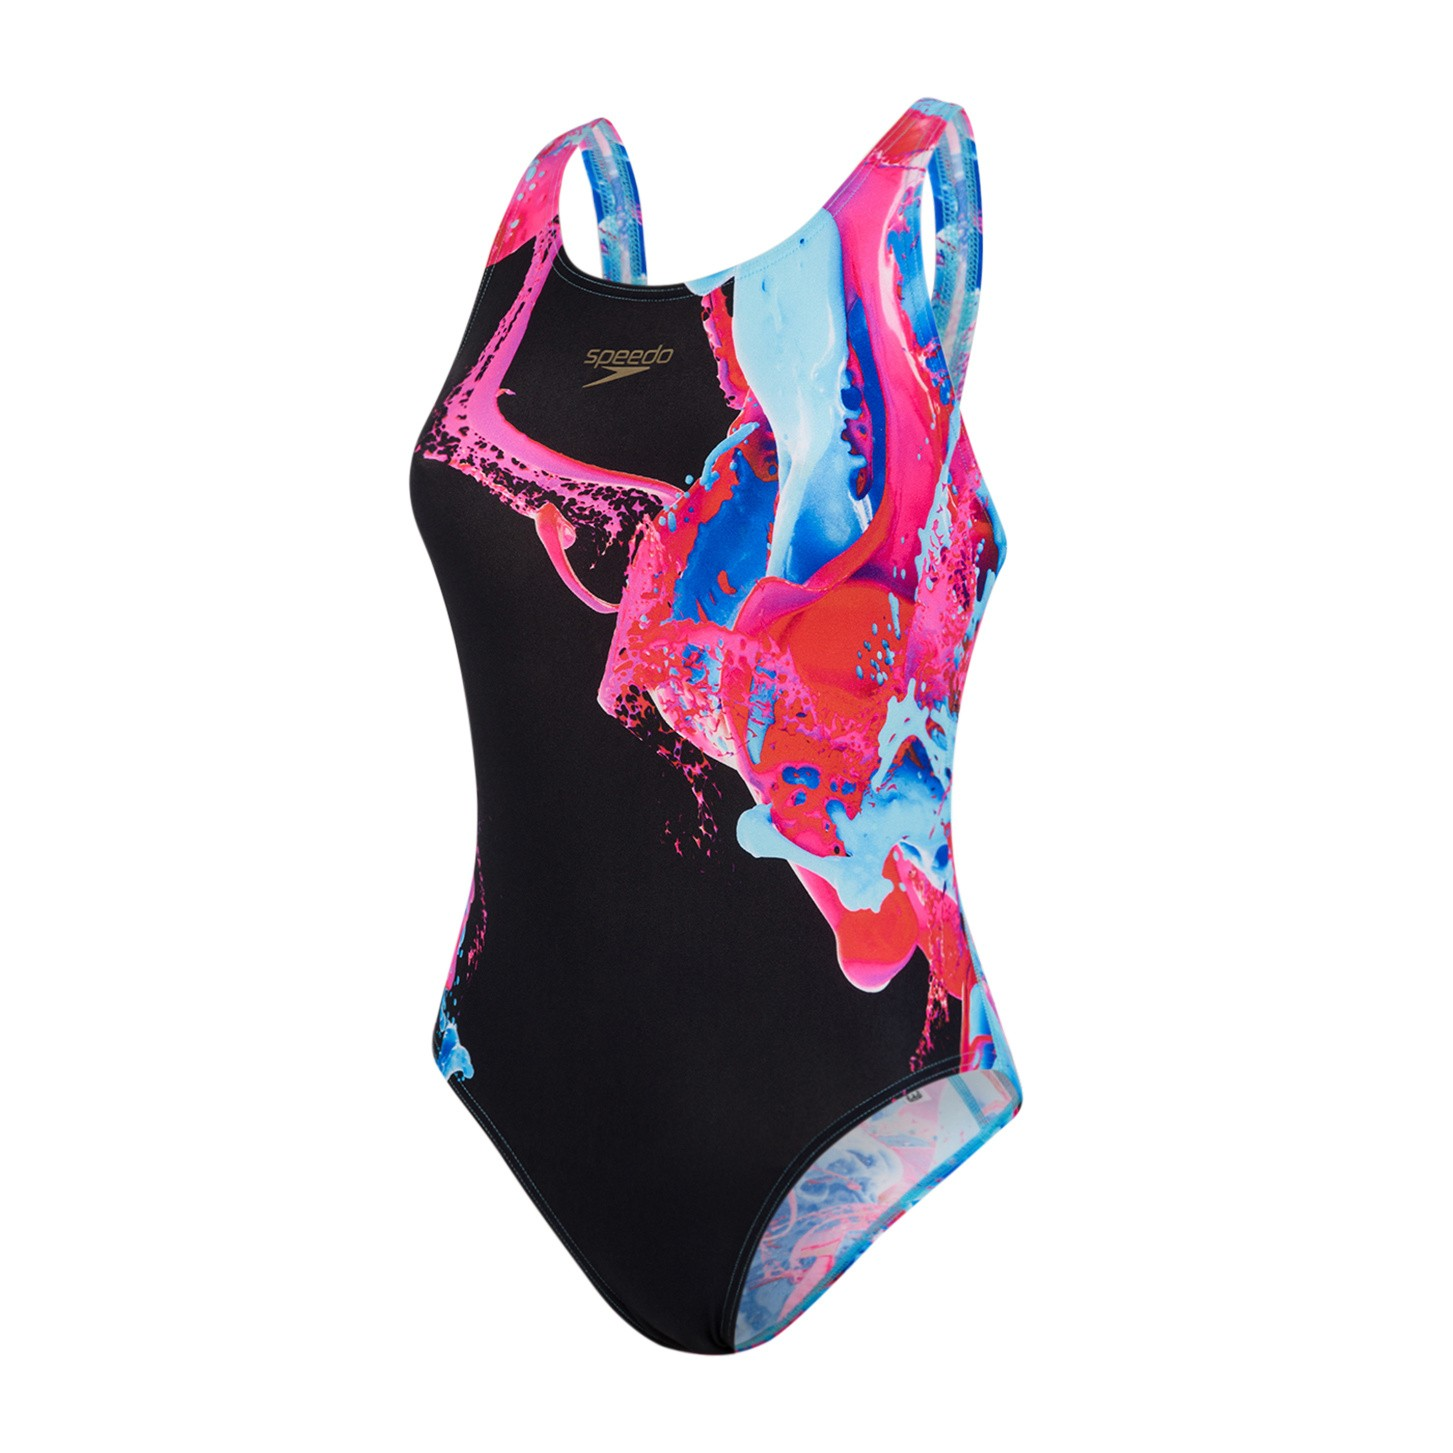 Speedo damesbadpak Colour